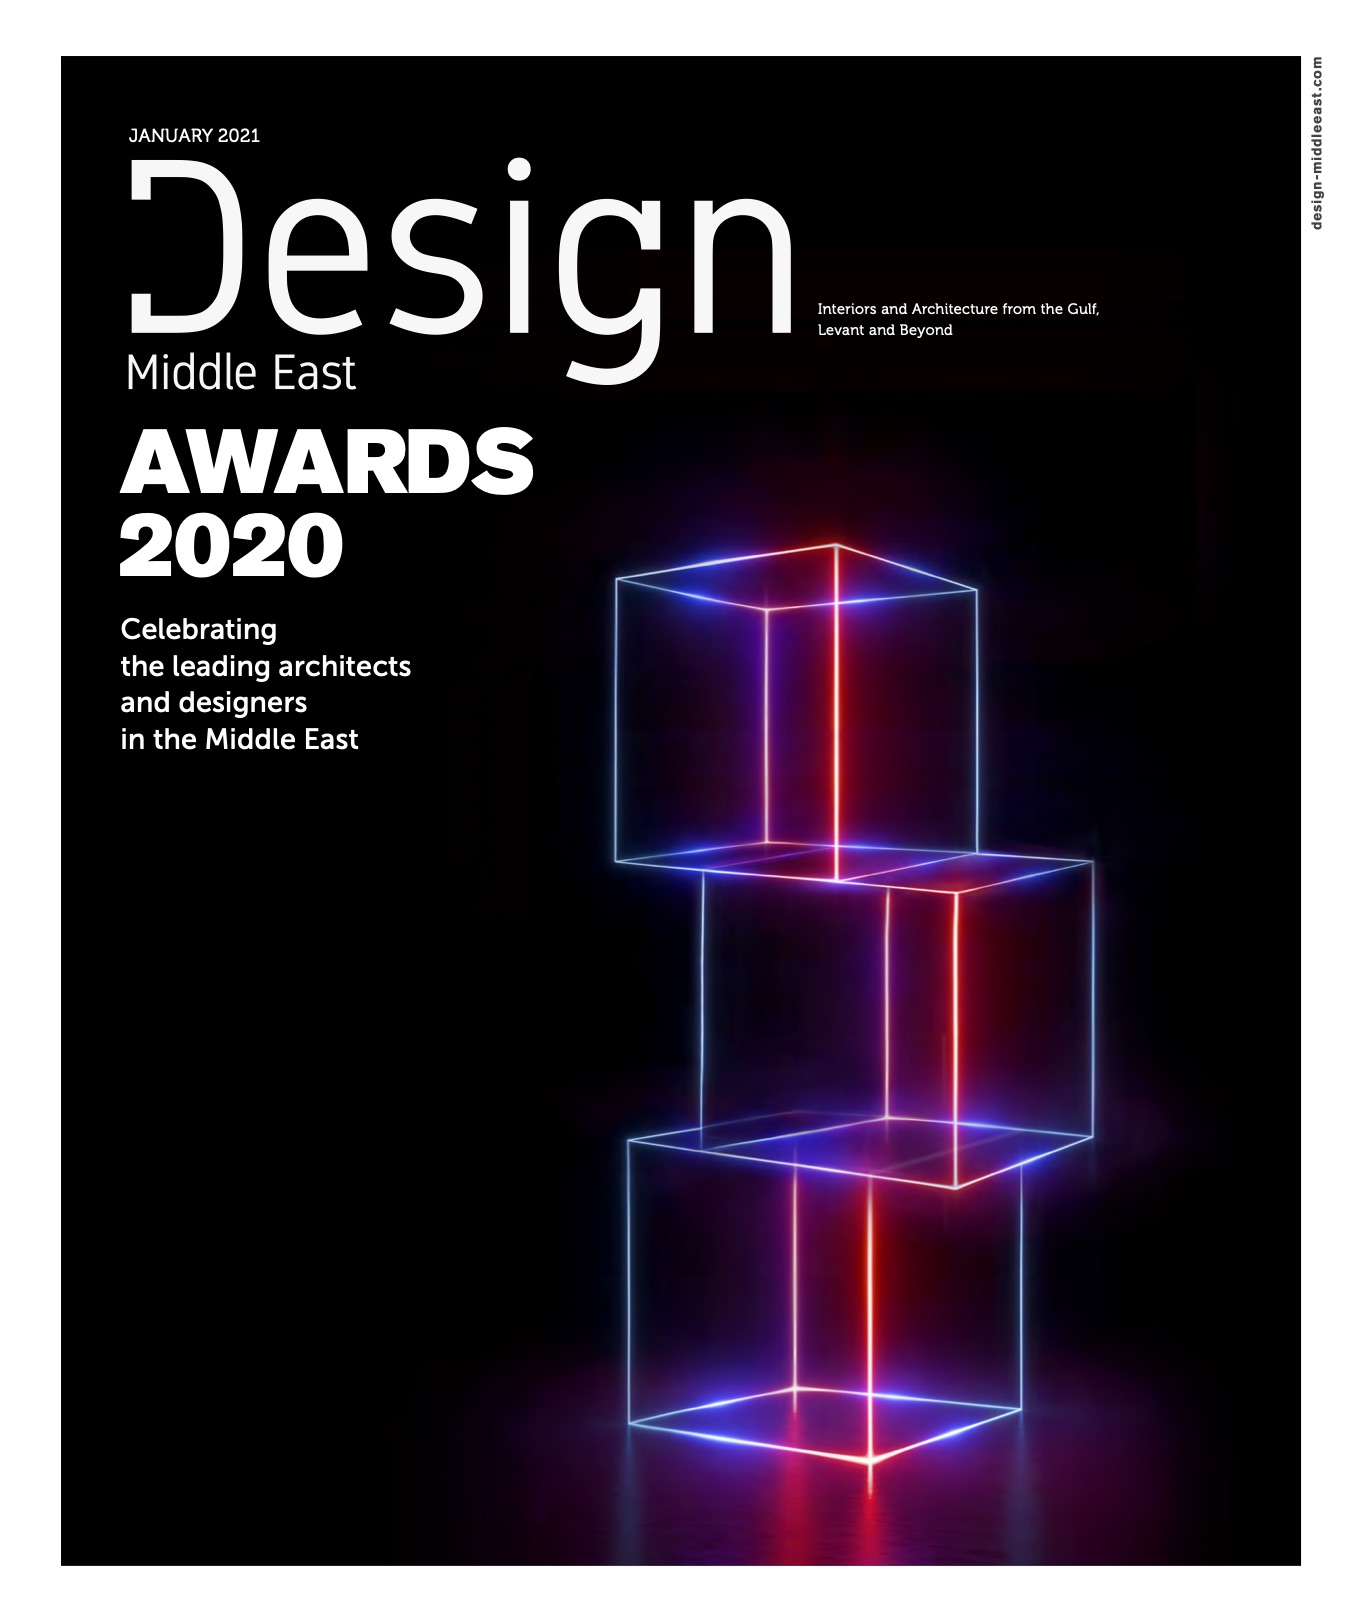 https://www.cbnme.com/magazines/design-me-january-2021/